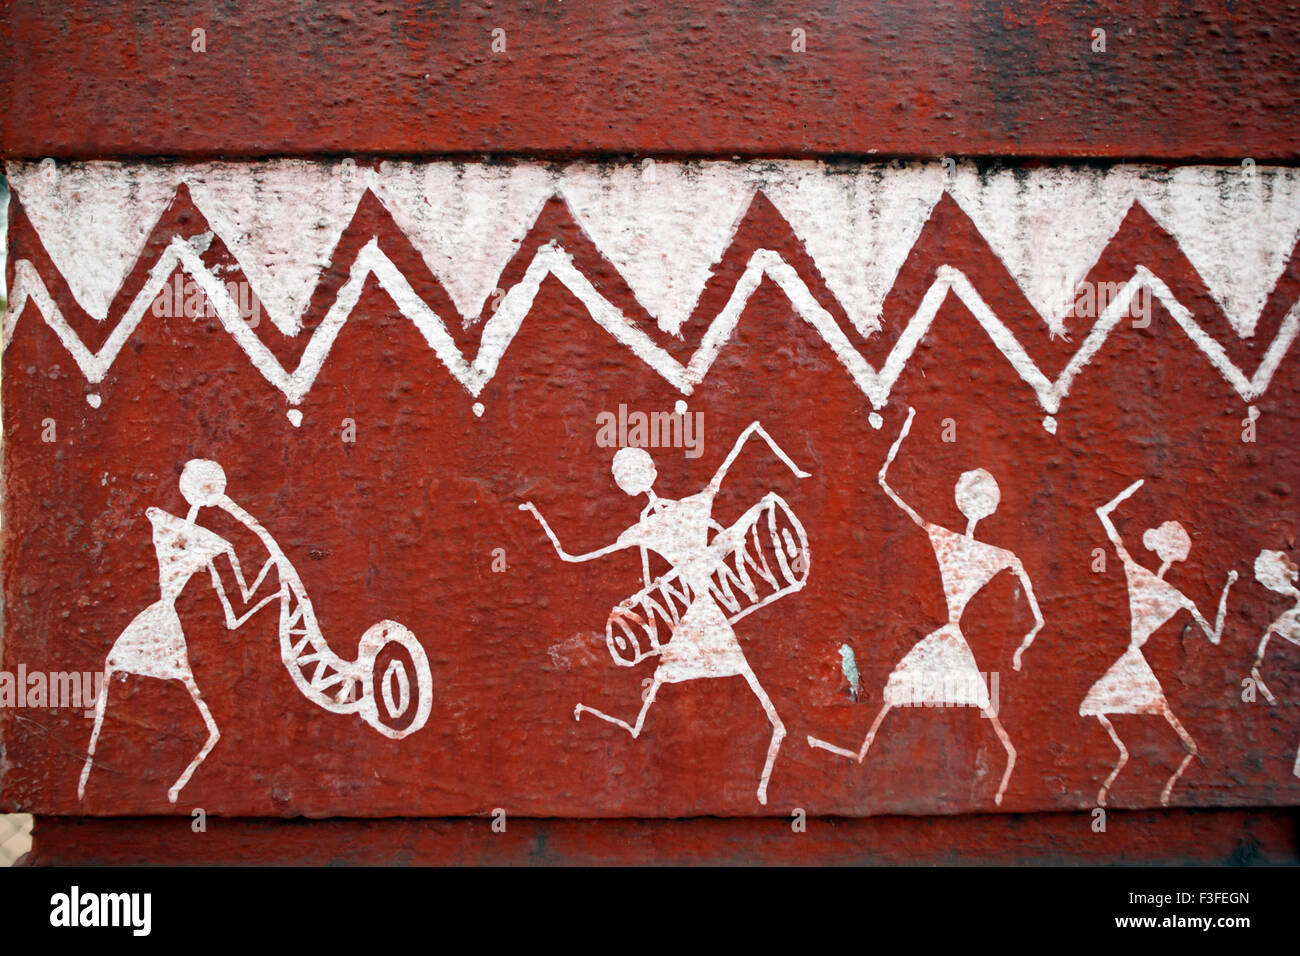 Tribal art warli painting maharashtra india stock photo tribal art warli painting maharashtra india altavistaventures Image collections